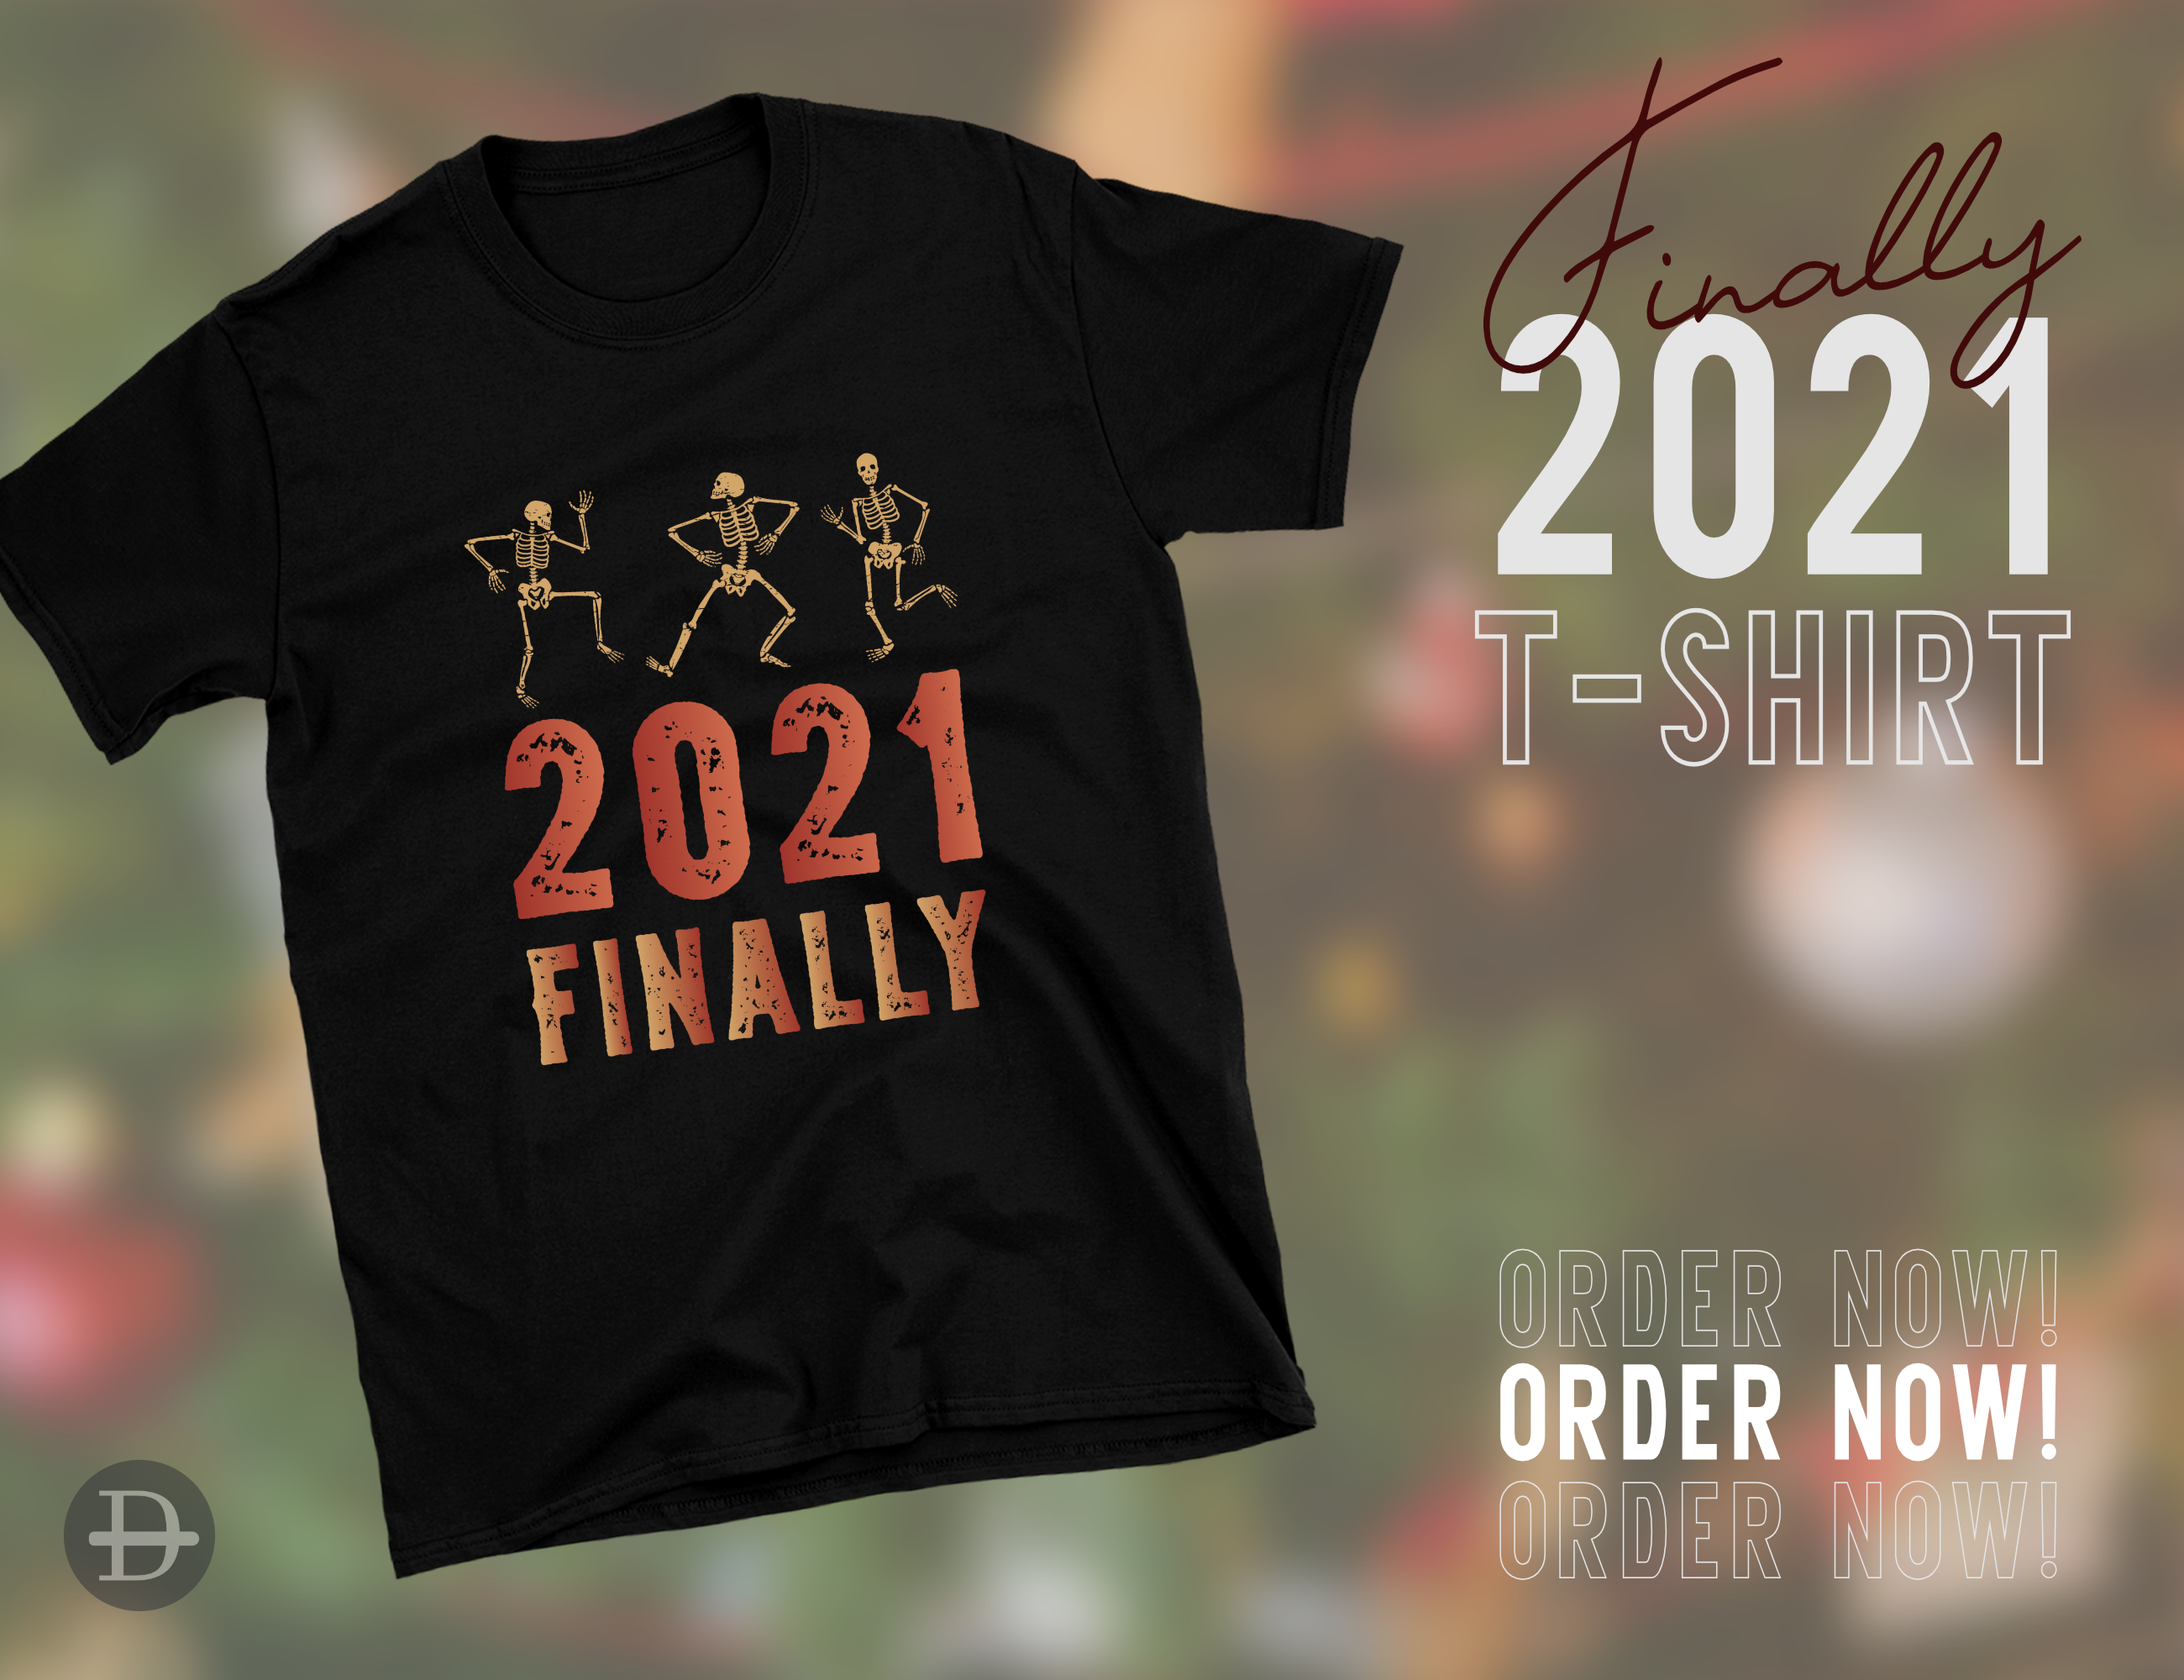 New Year 2021 Finally Vintage Short Sleeve Unisex T Shirt Etsy In 2020 Funny Holiday Shirts Holiday Shirts Party Tees